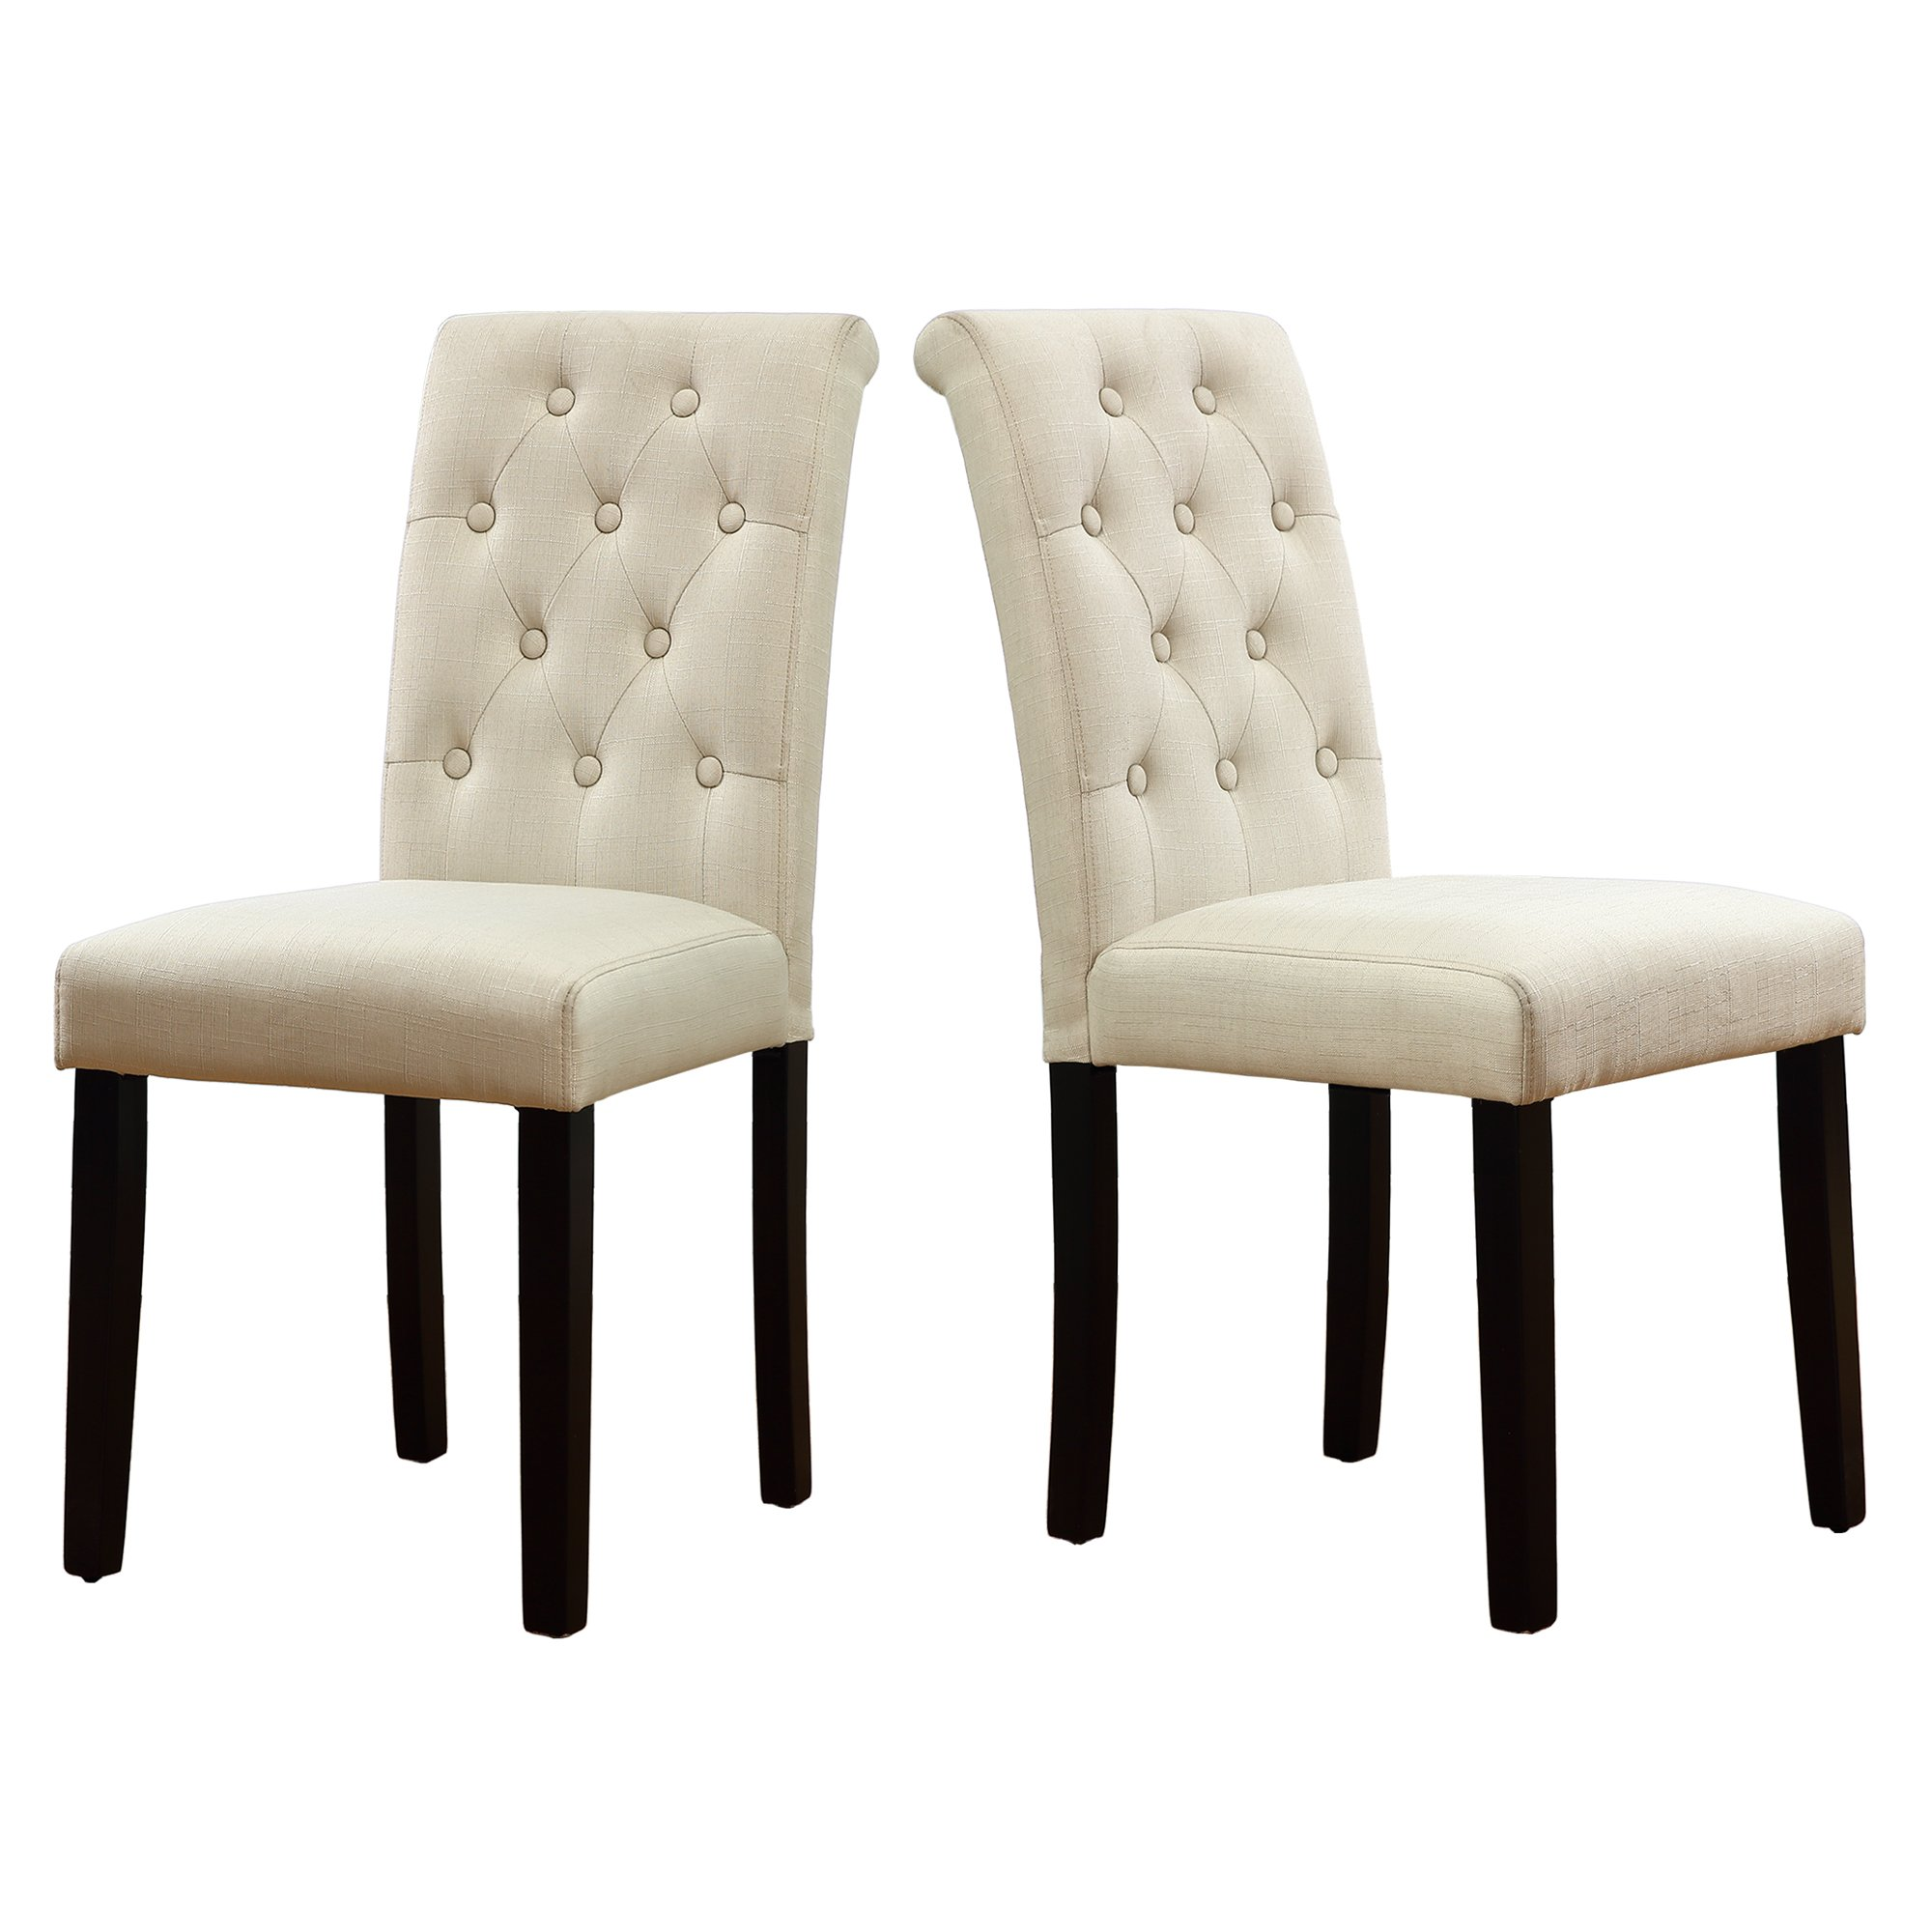 LSSBOUGHT Button-tufted Upholstered Fabric Dining Chairs with Solid Wood Legs, Set of 2 (Cream)